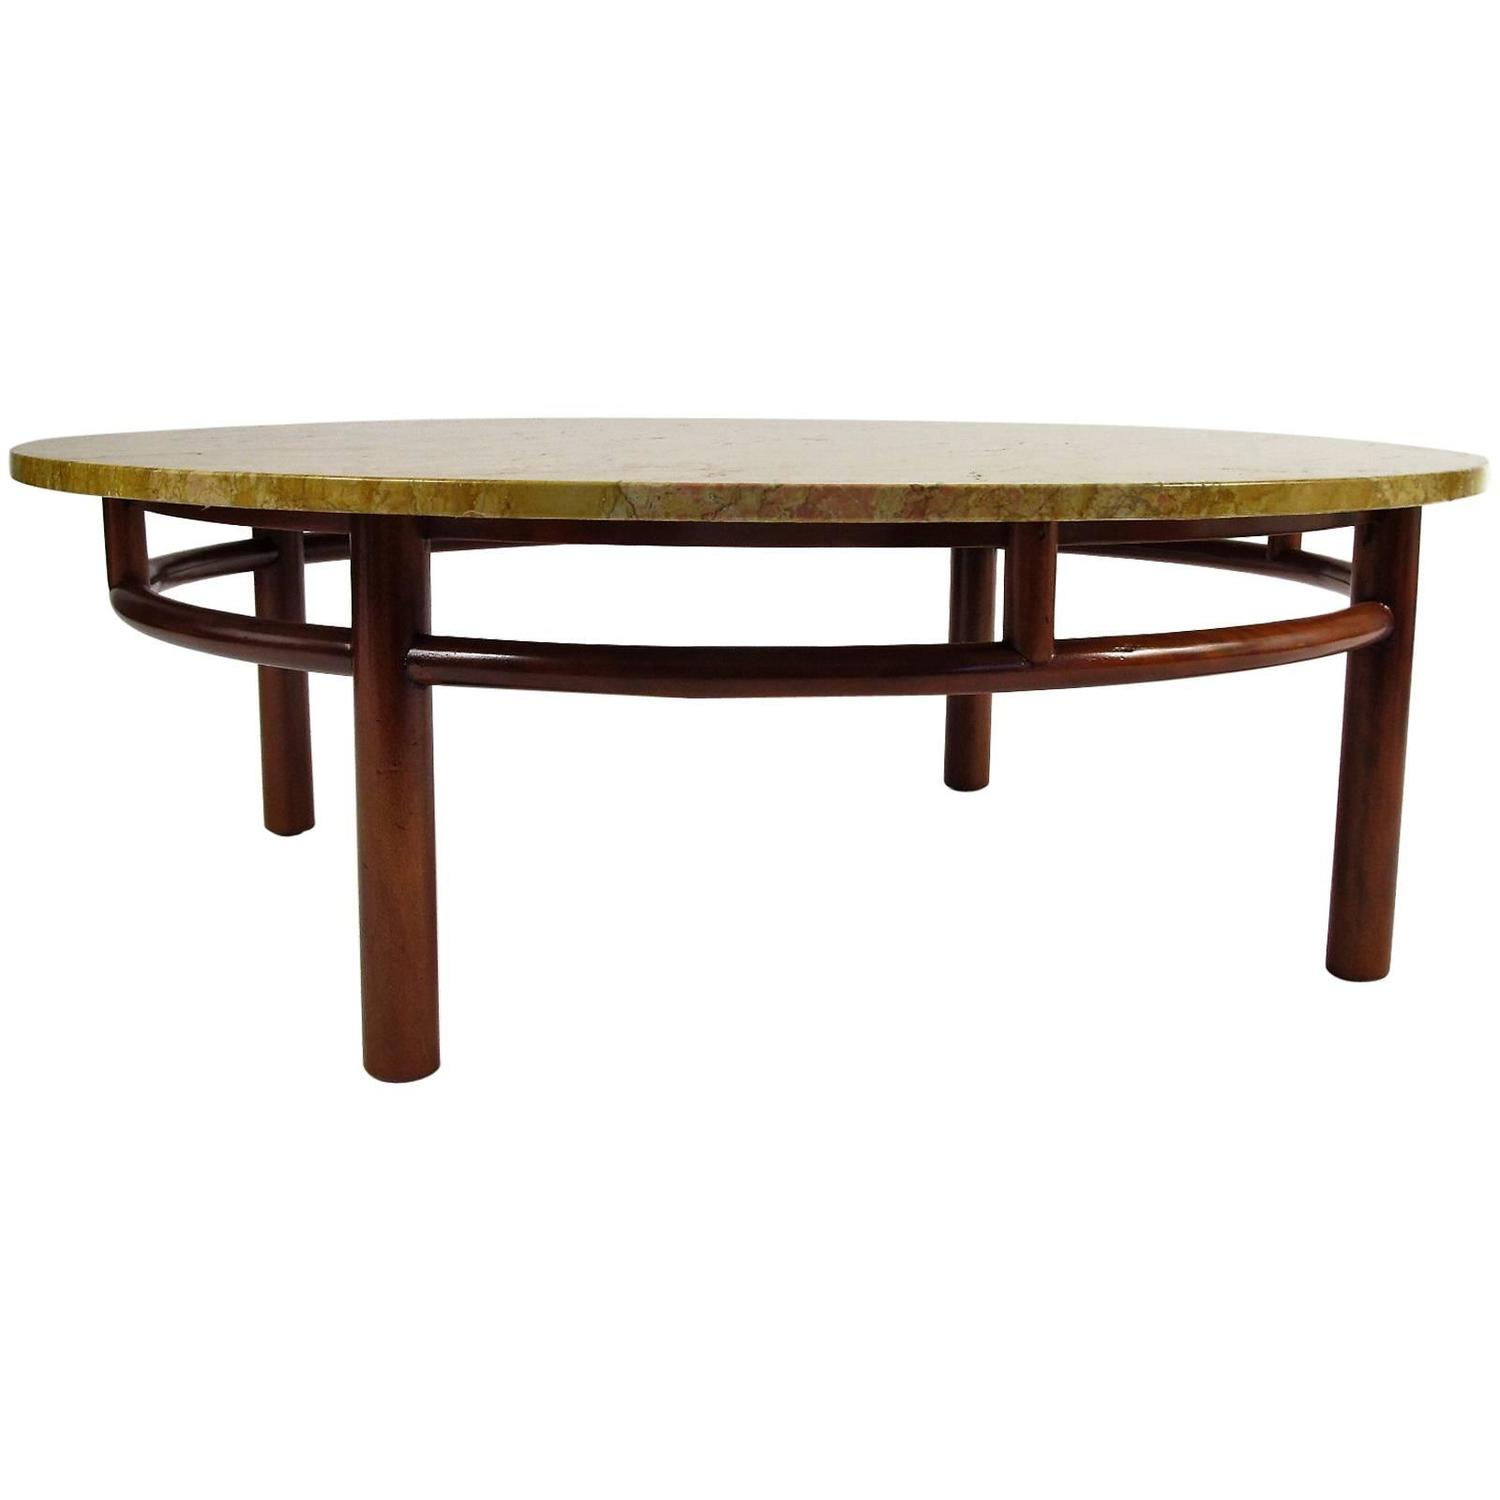 T H Robsjohn Gibbings Marble Round Coffee Table For Widdicomb At 1stdibs